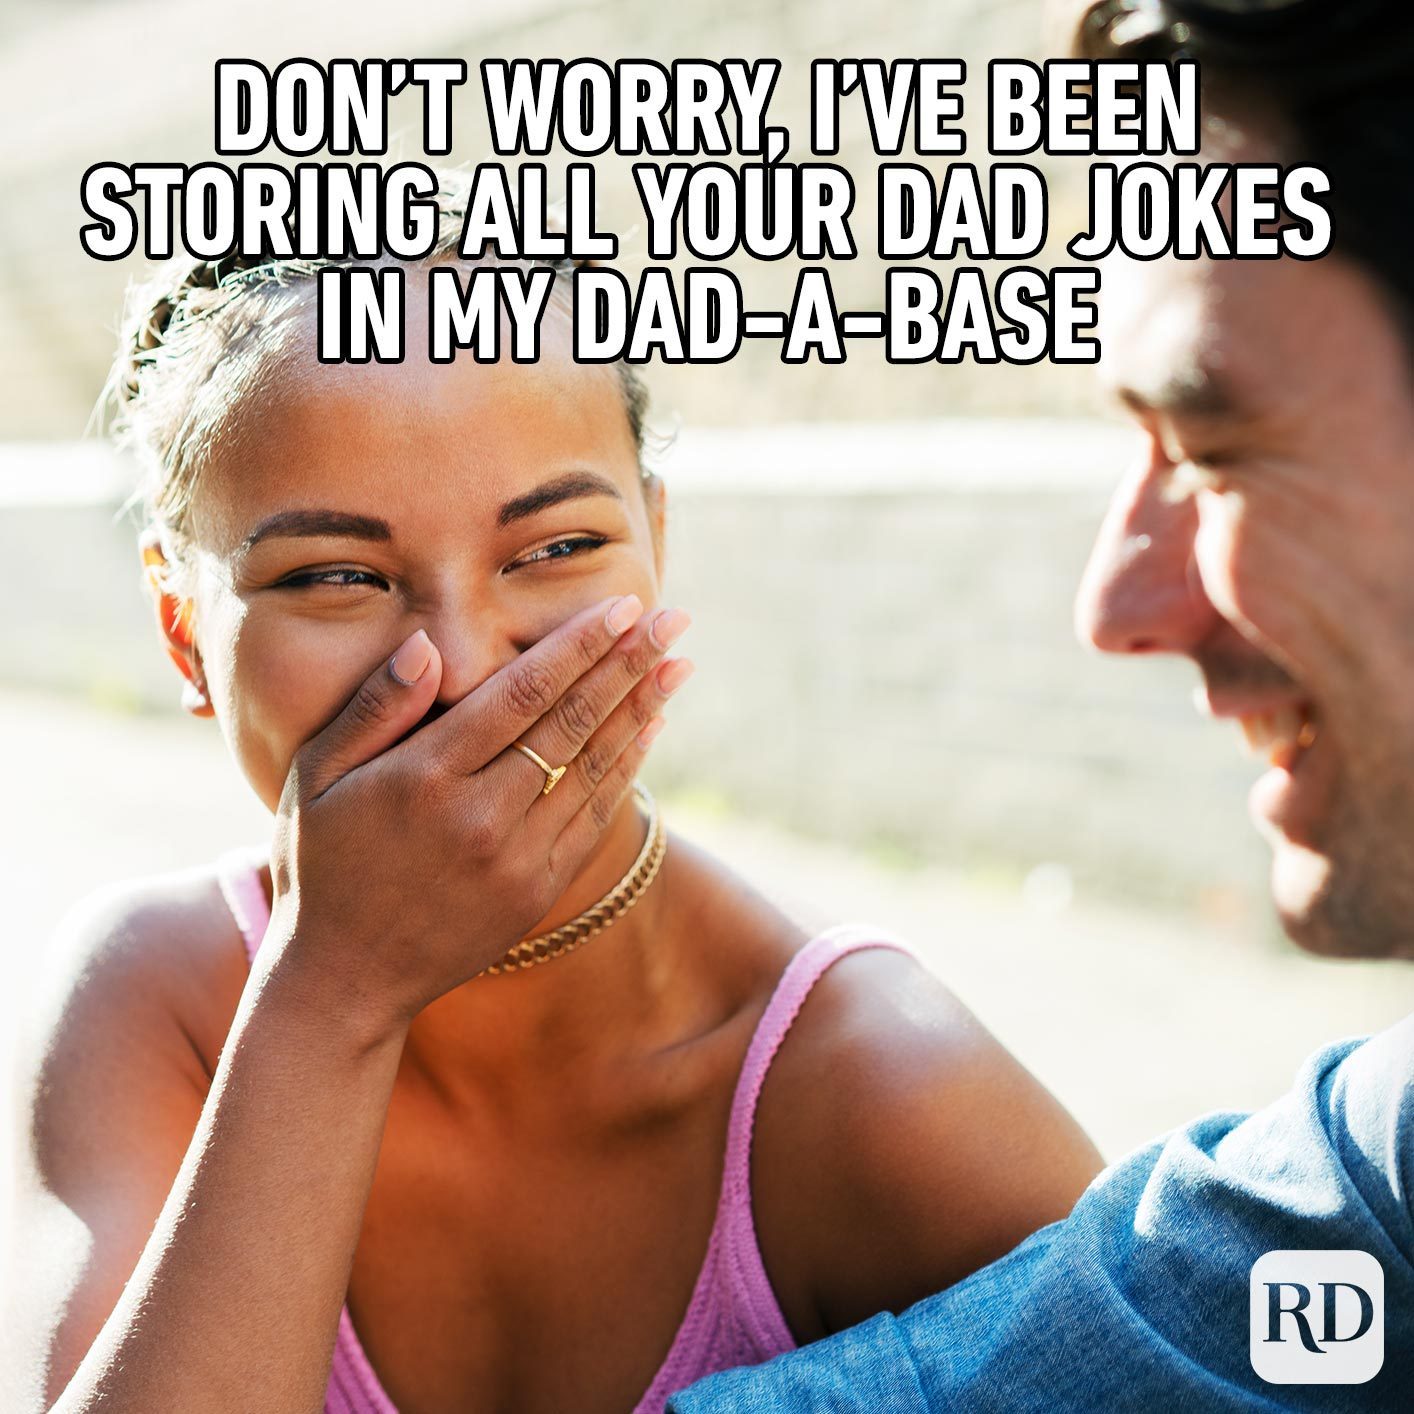 Daughter laughing at father. Meme text: Don't worry, I've been storing all you dad jokes in my dad-a-base